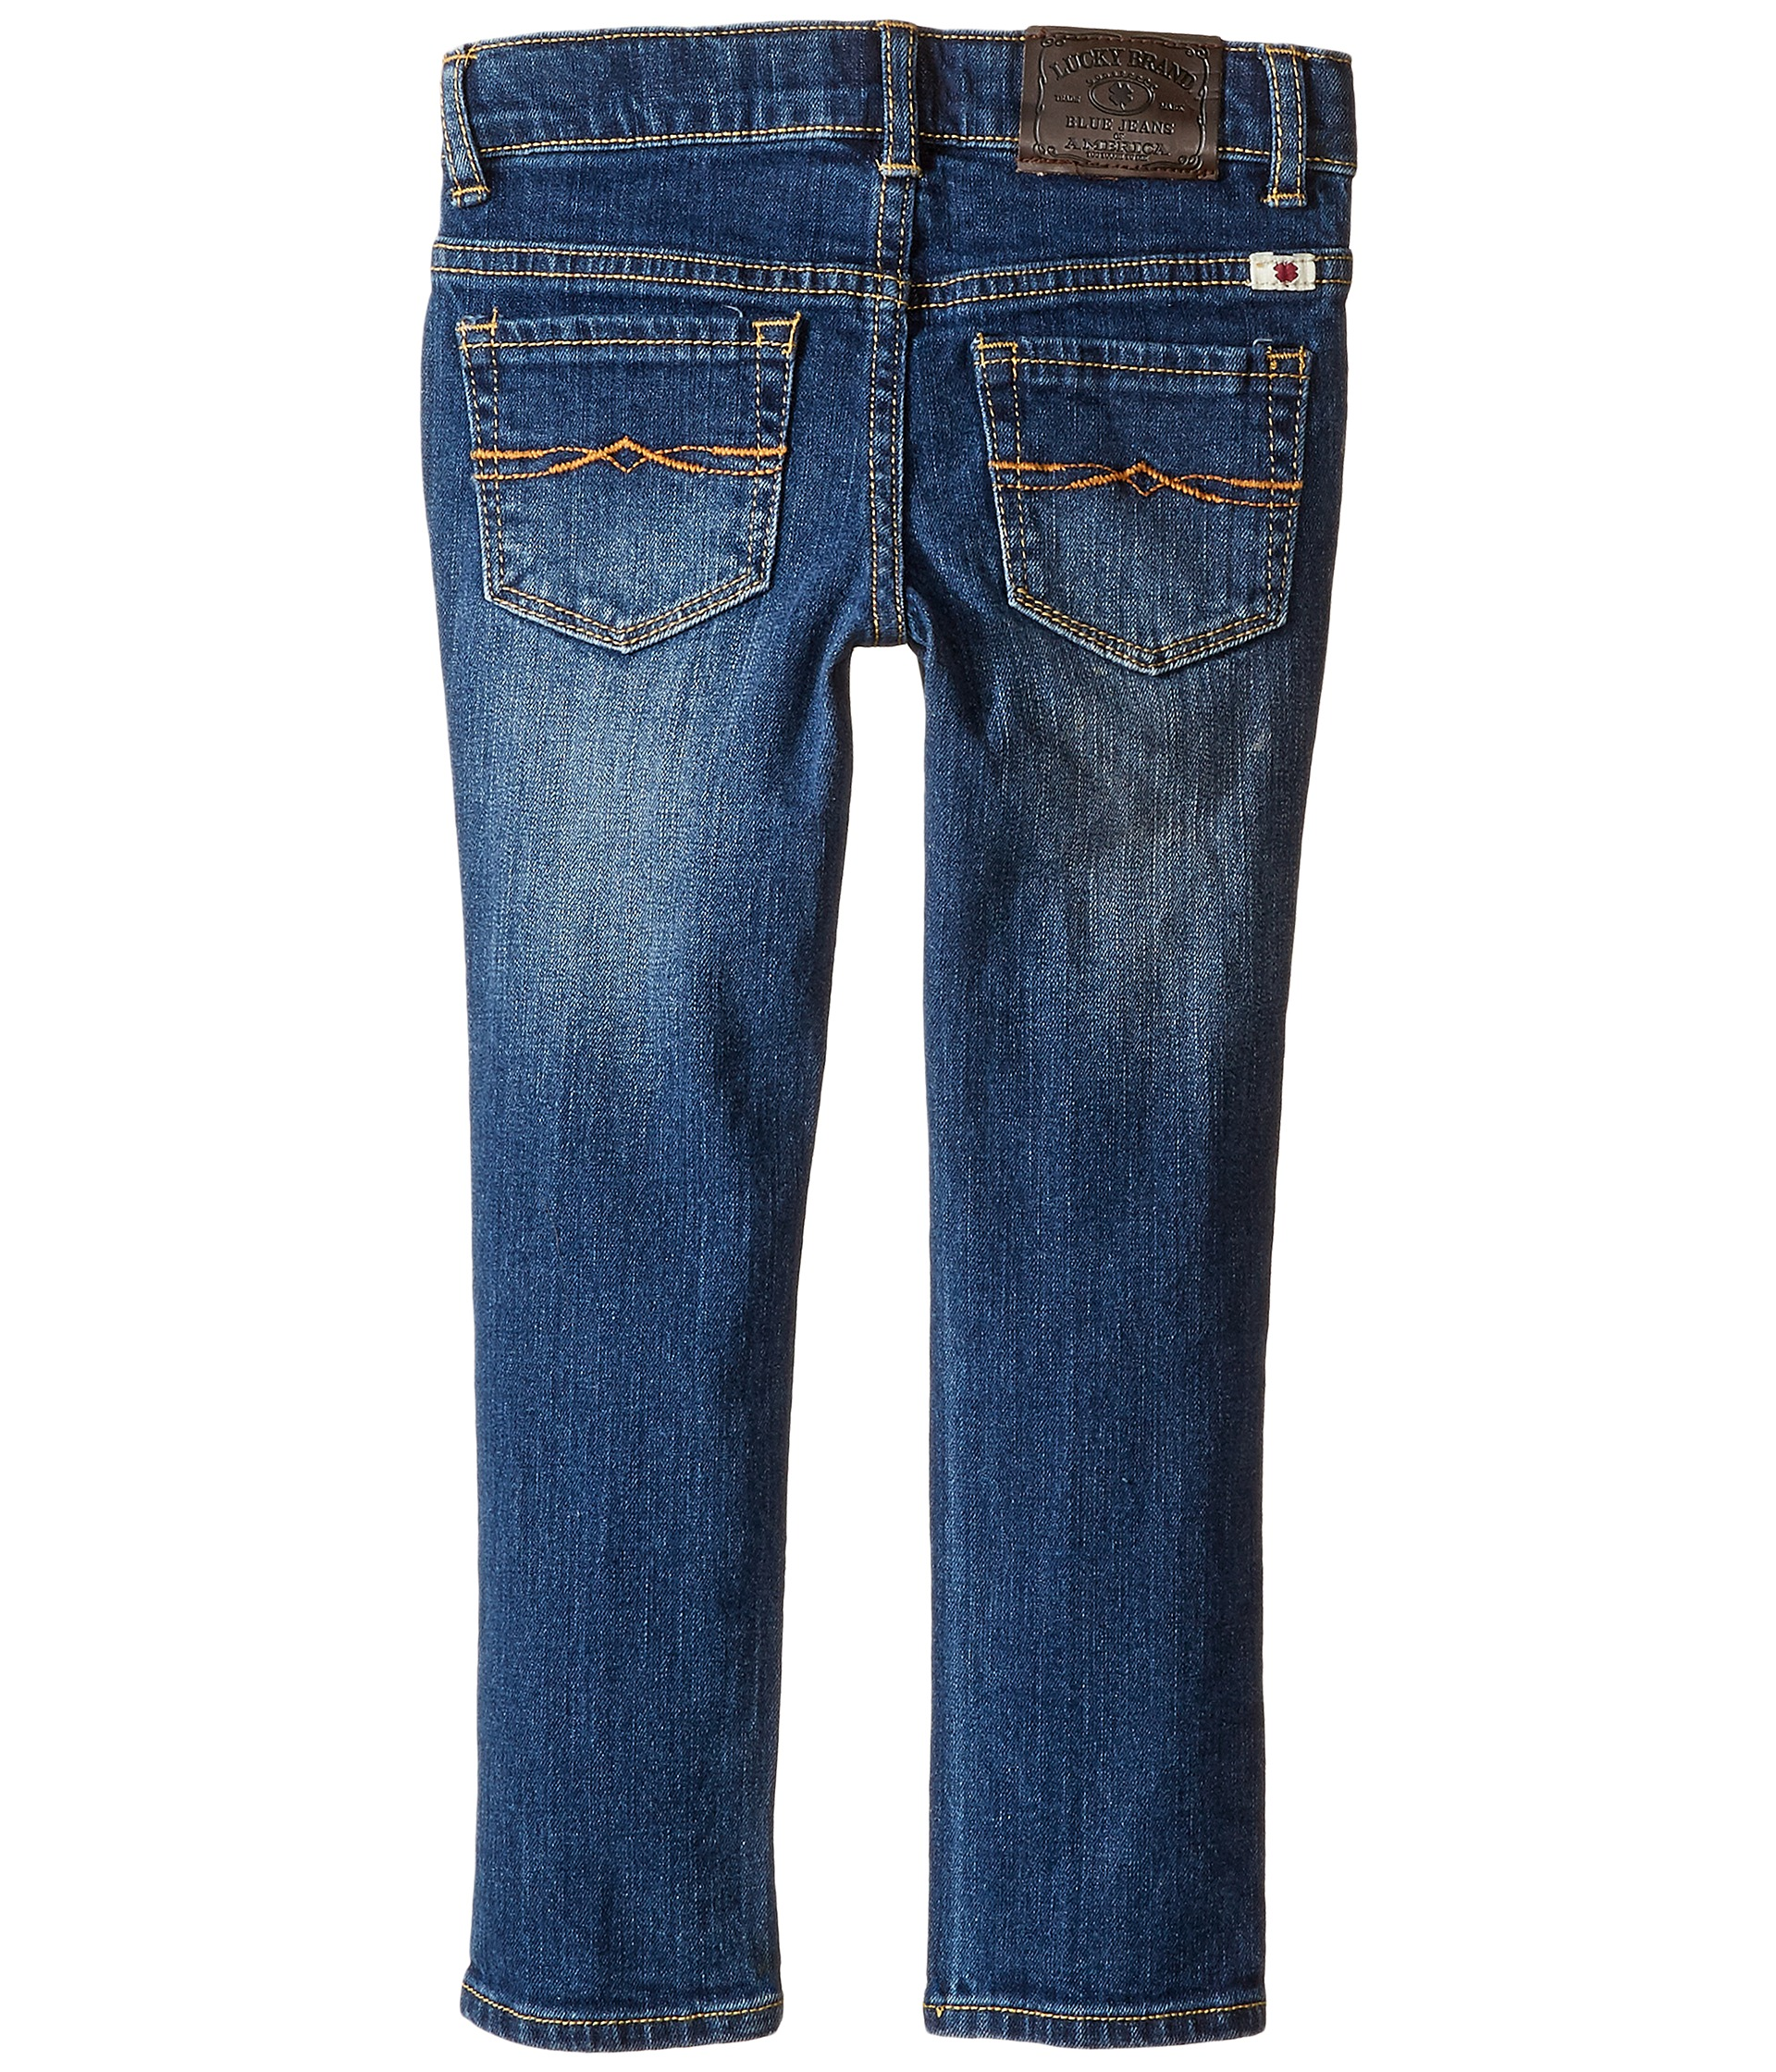 Lucky brand kids zoe jeans with embroidery in blue wash